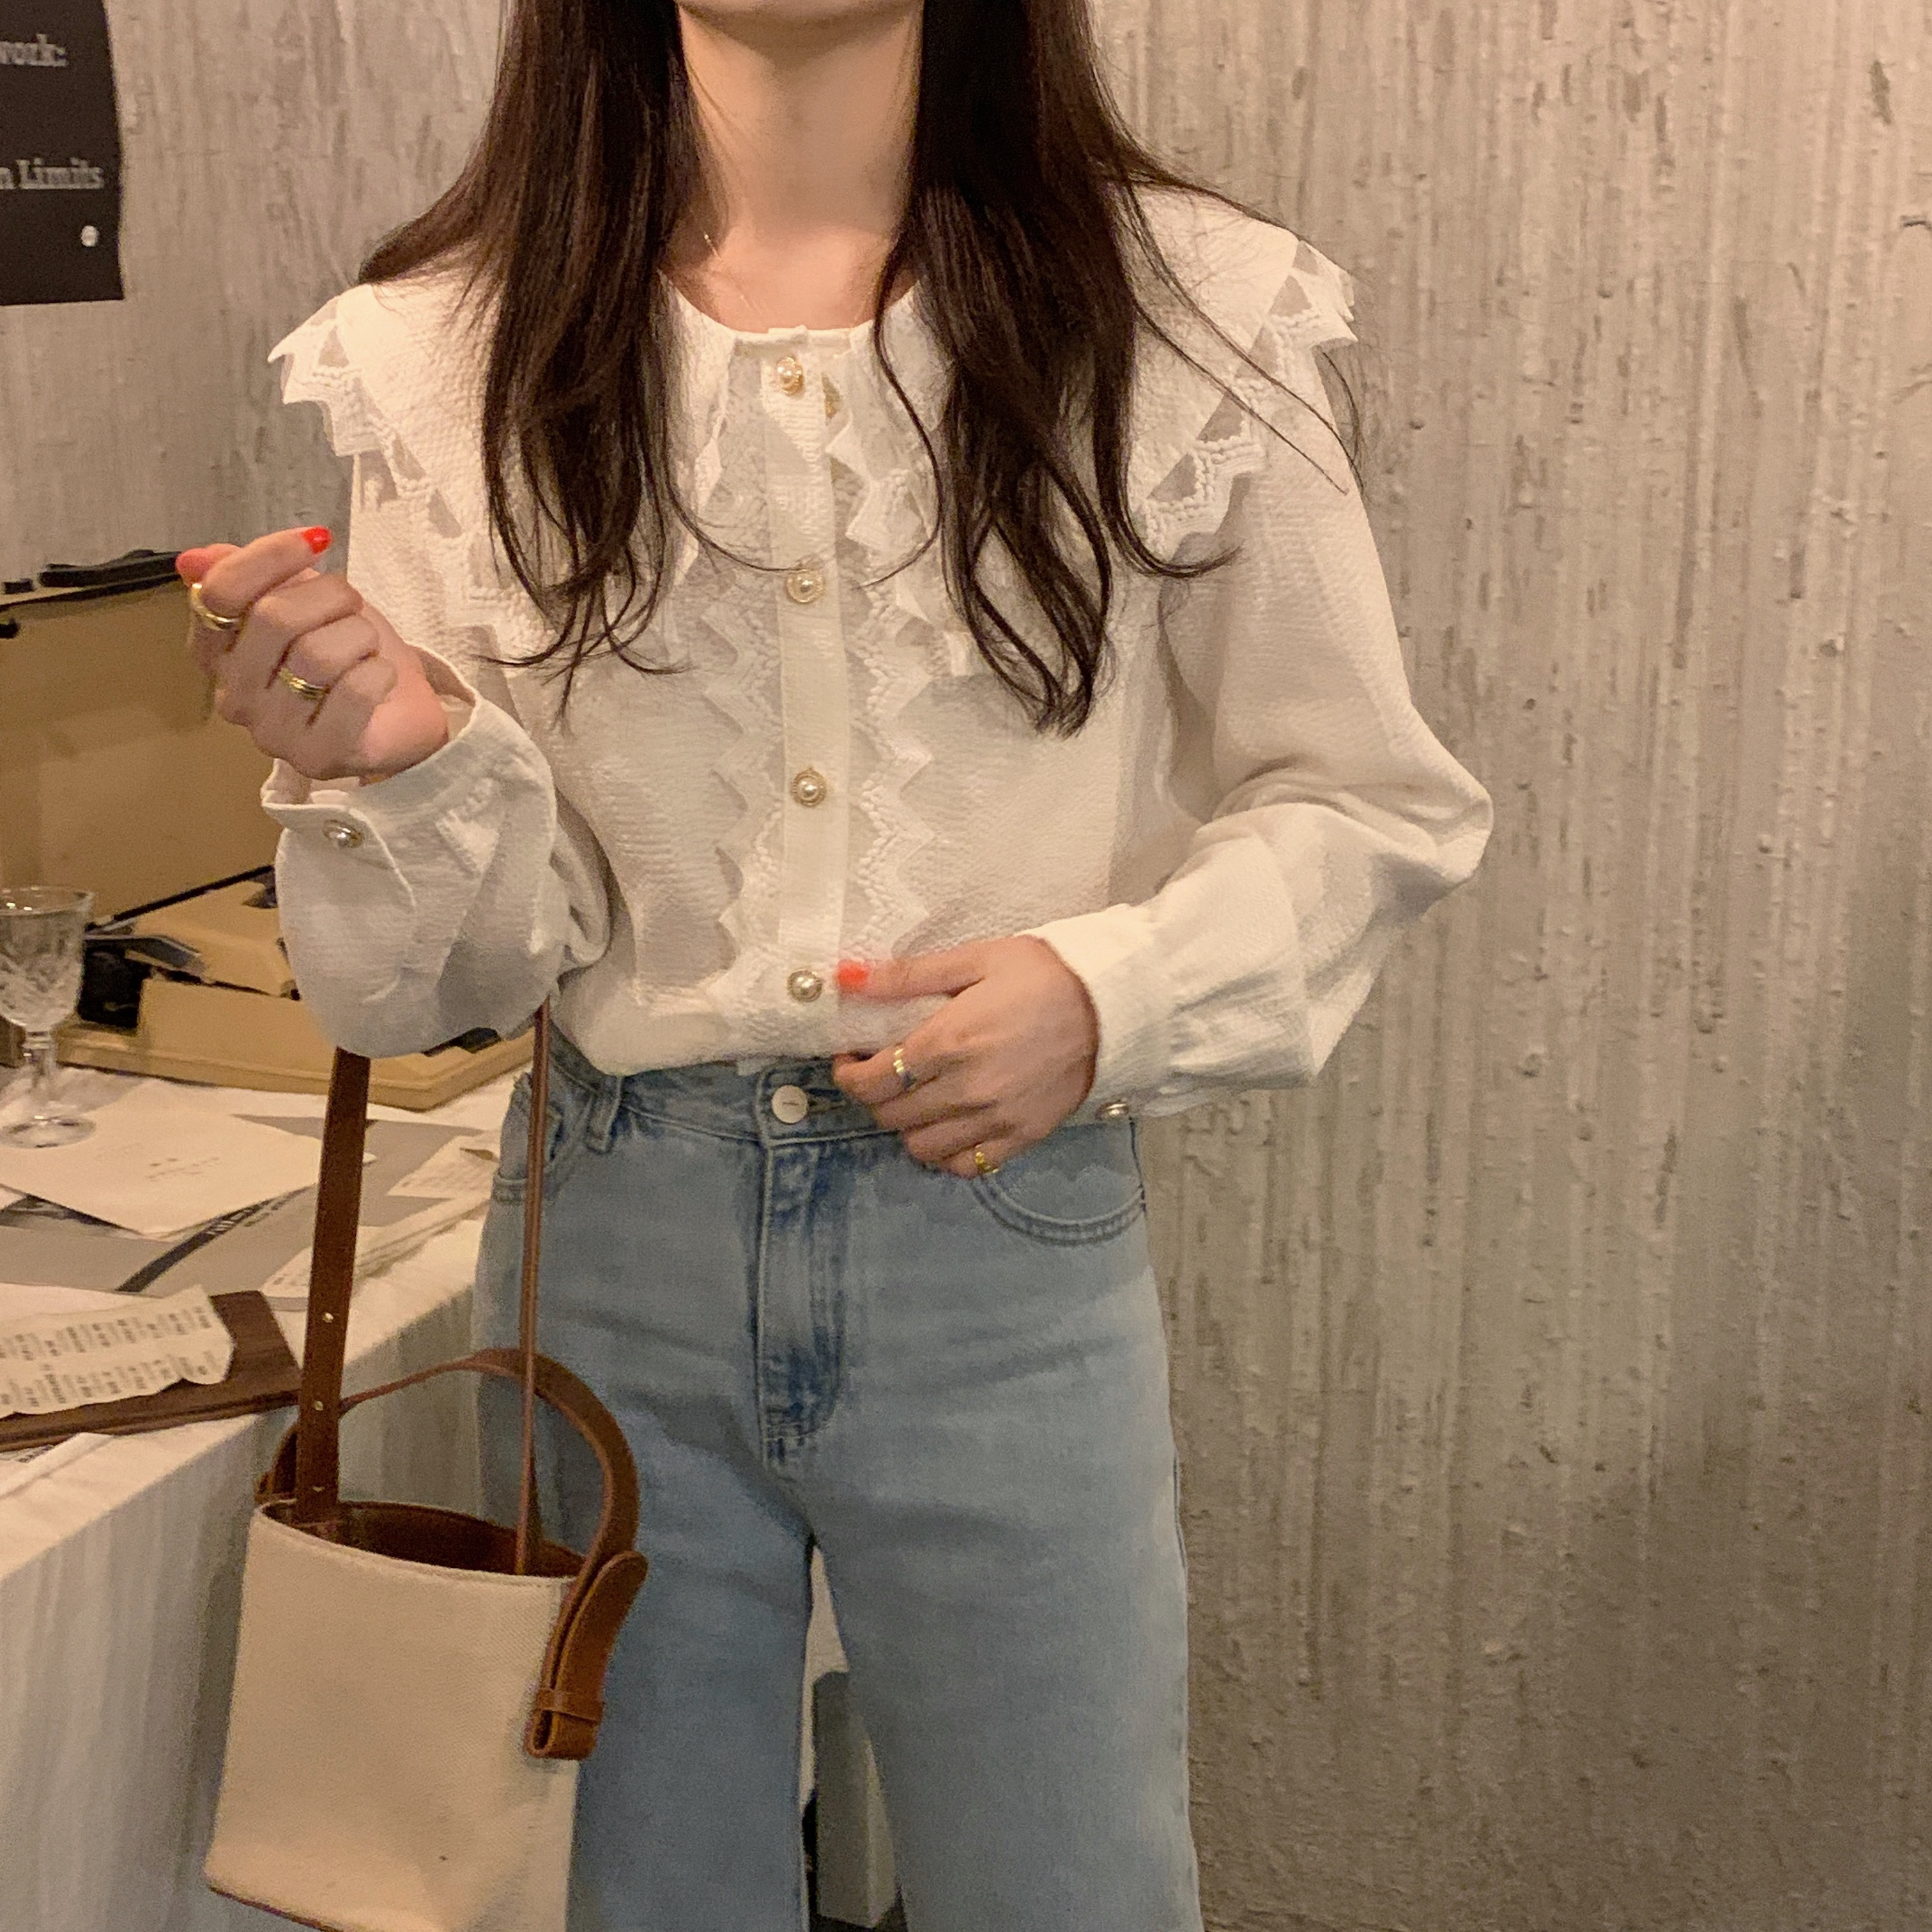 He15d9fea98a245e3b7e409add378431bD - Spring / Autumn Big Lapel Collar Long Sleeves Lace Buttons Solid Blouse